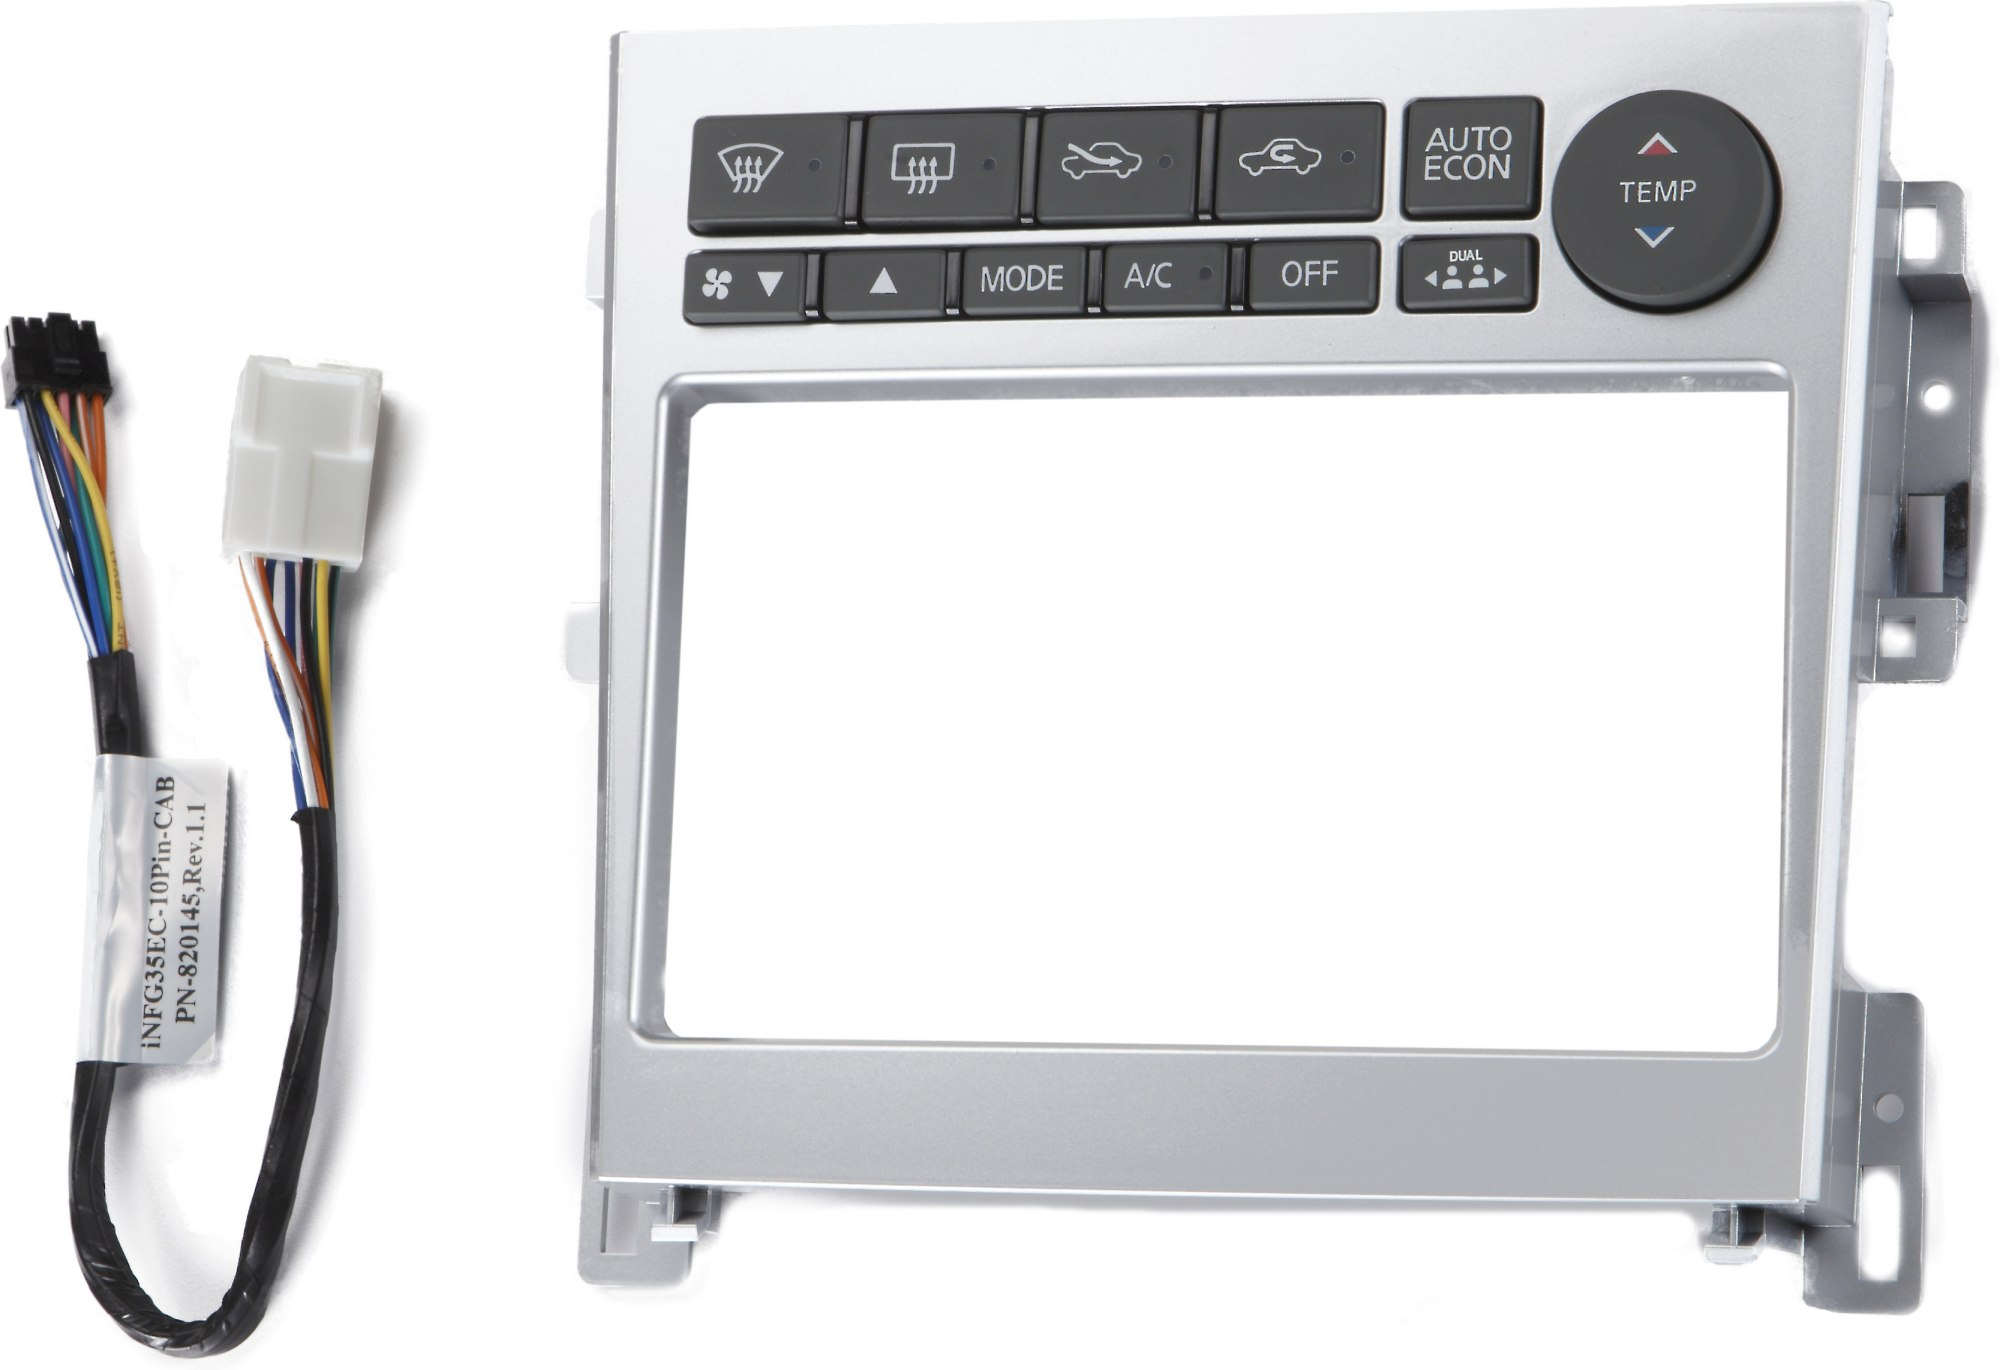 hight resolution of metra 95 7605 dash kit silver finish install a new double din receiver in your 2005 07 infiniti g35 at crutchfield